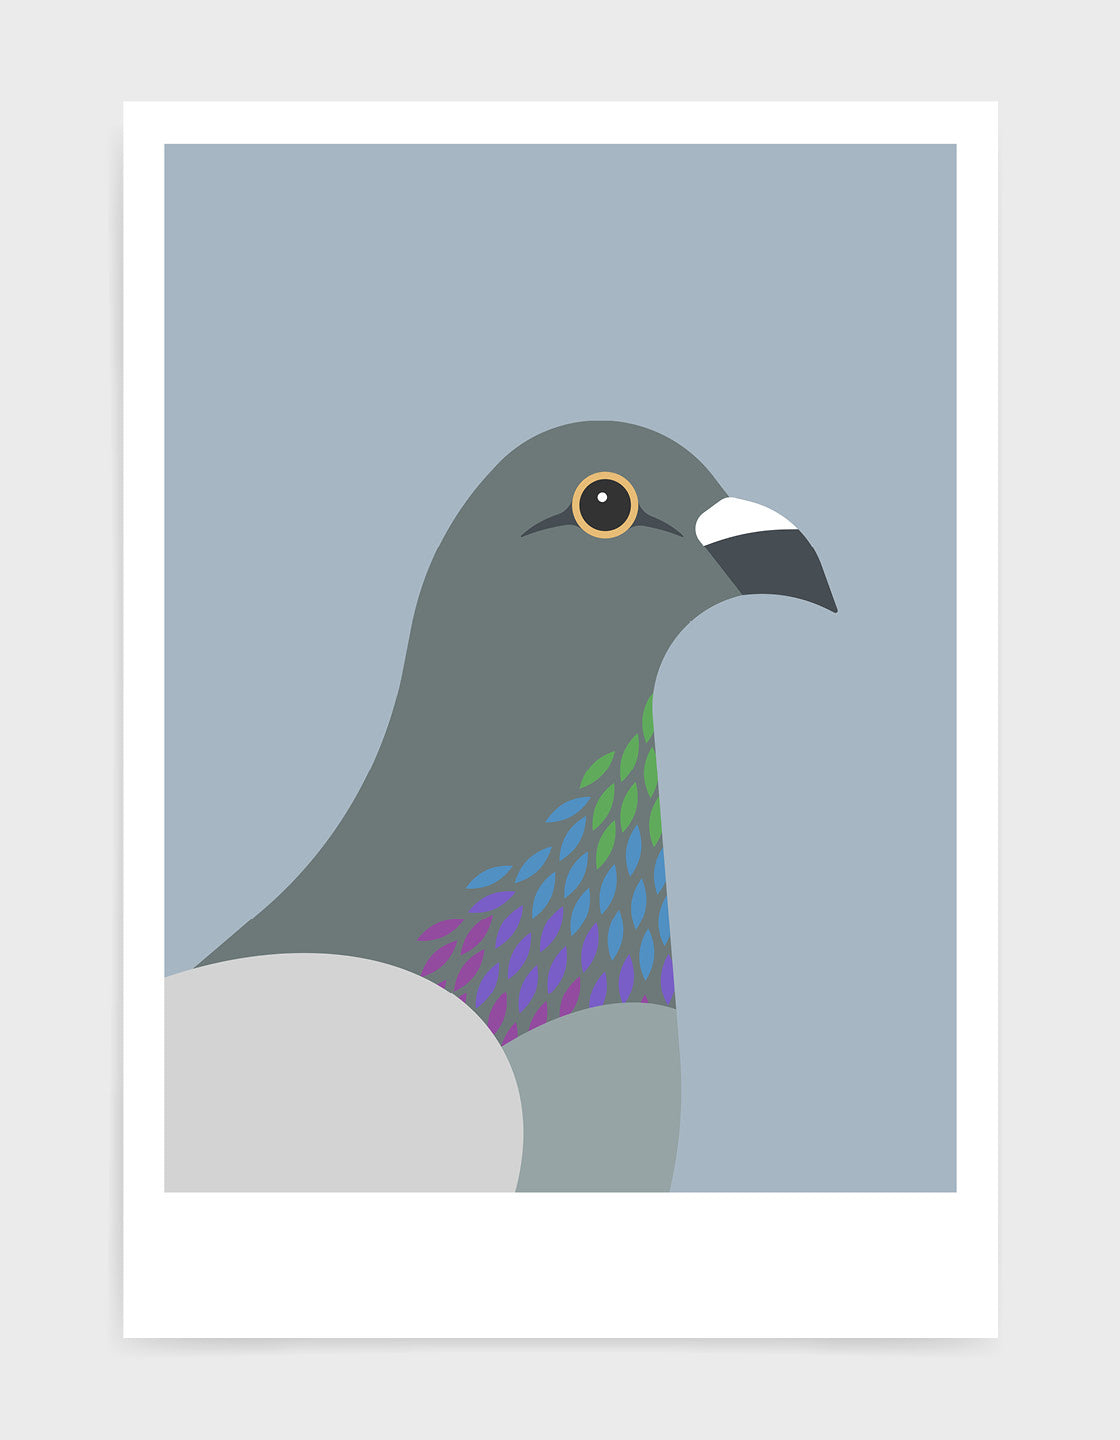 art print of a pigeon in profile against a light grey background